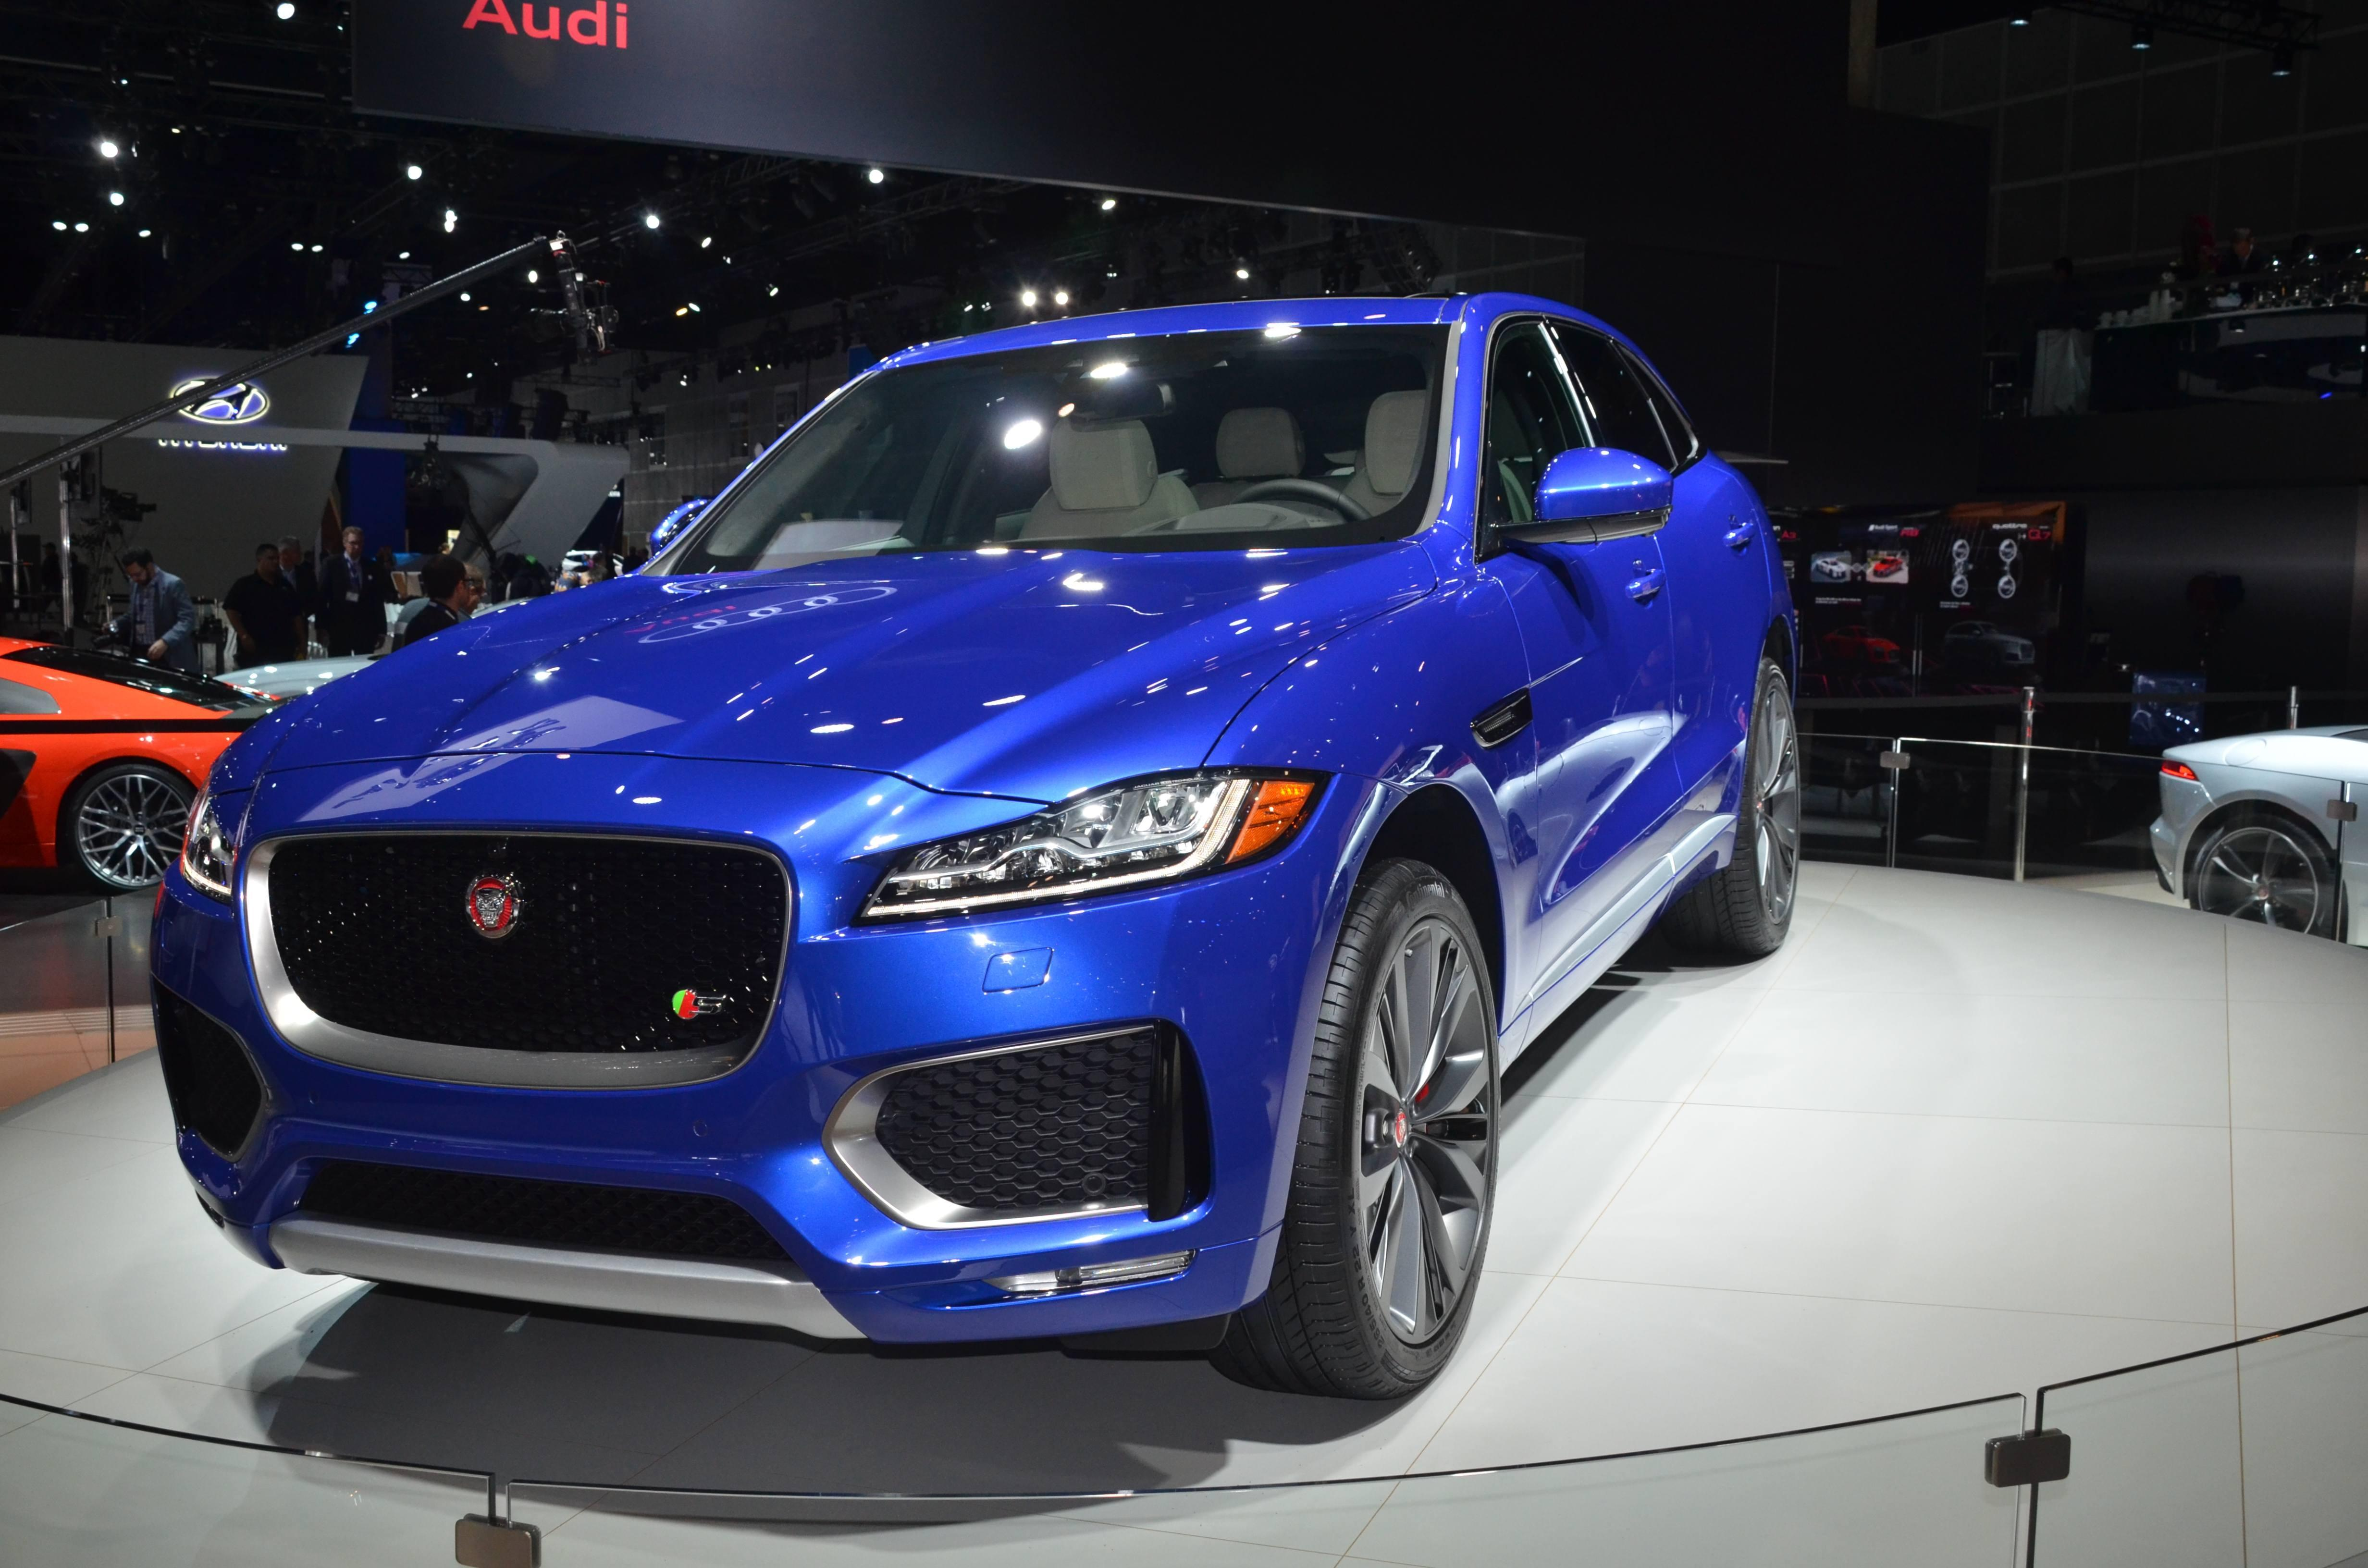 The Jaguar F-Pace is the most beautiful SUV on planet Earth